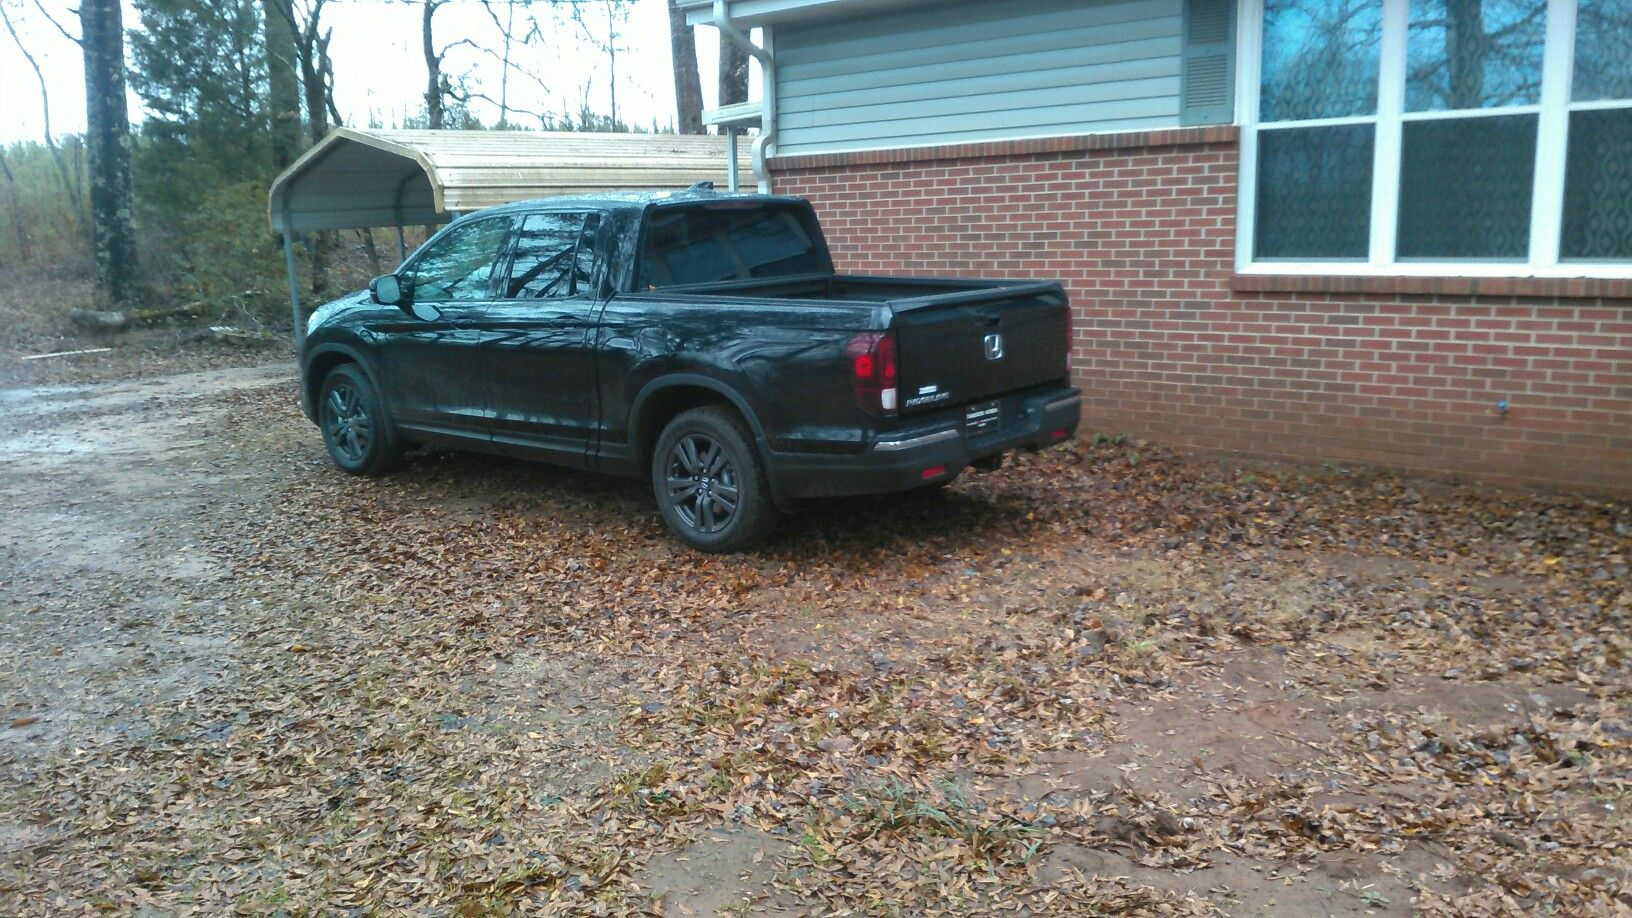 2018 Sport Ridgeline I Bought 12 22 17 After Trading In My Lifted F150 2005 And Chevy Aveo Type 2 2011 F150 Suv Car Chevy